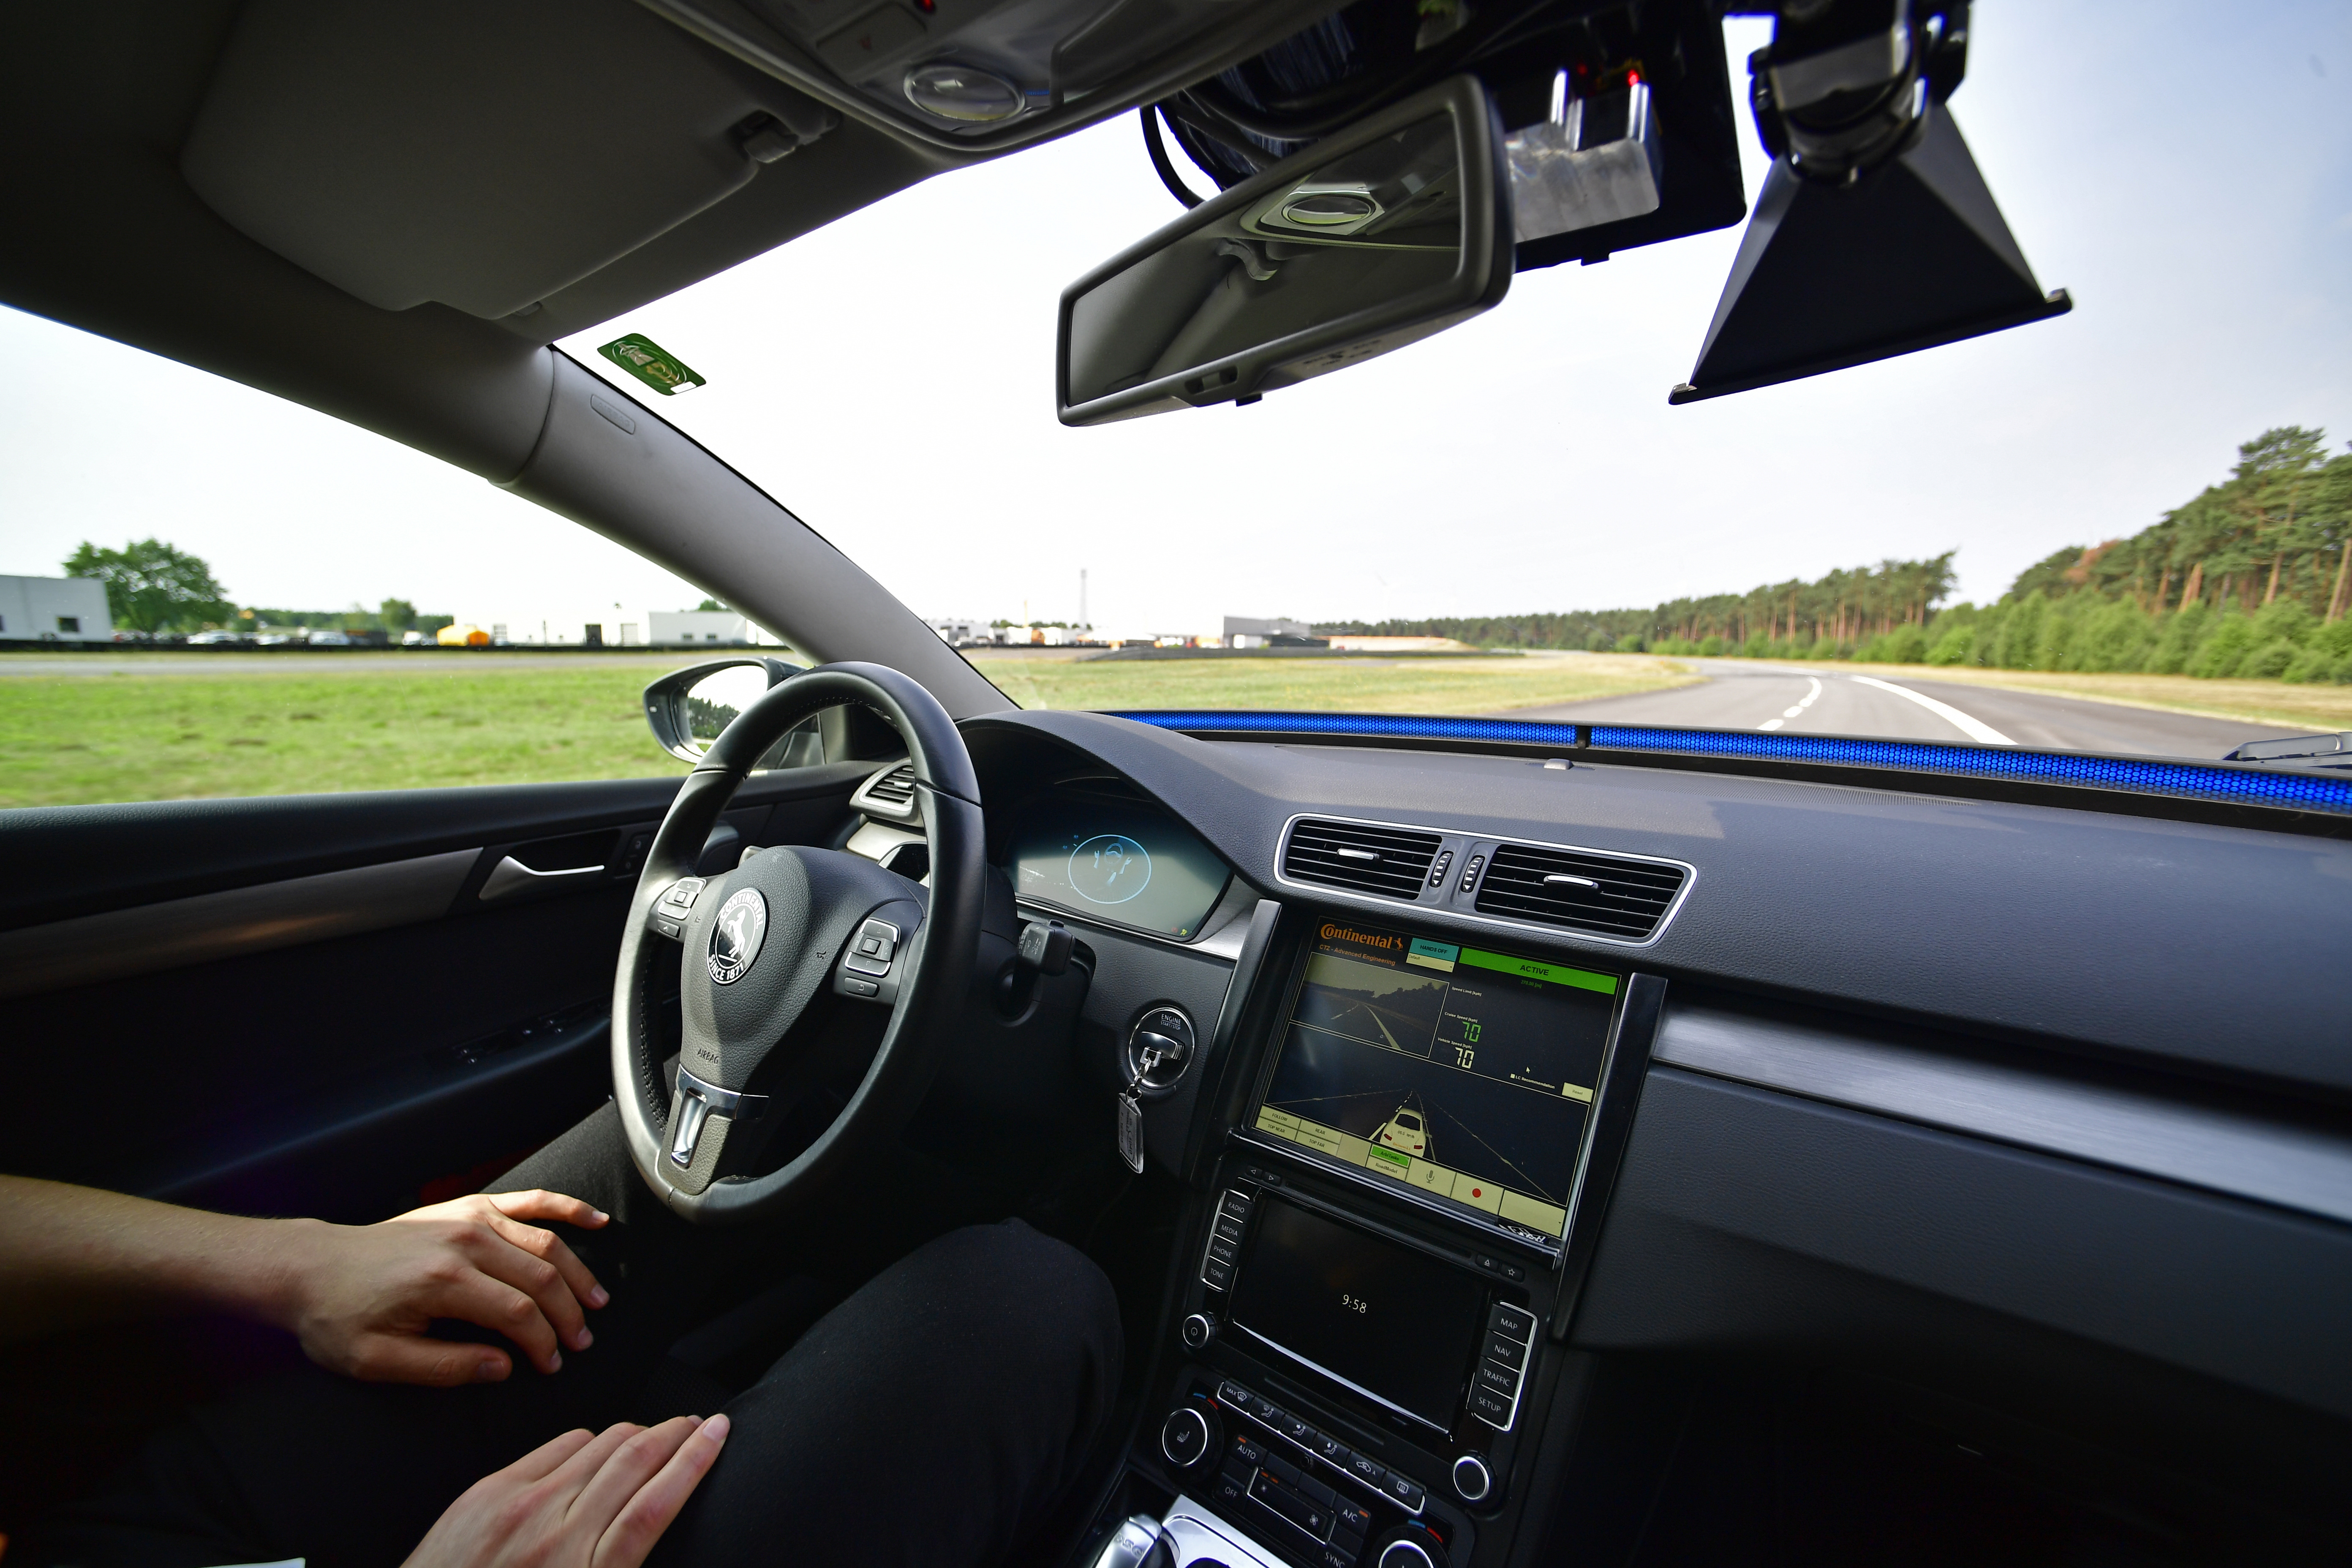 A driver presents a Cruising Chauffeur, a hands free self-driving system designed for motorways during a media event by Continental to showcase new automotive technologies on June 20, 2017 in Hanover, Germany.